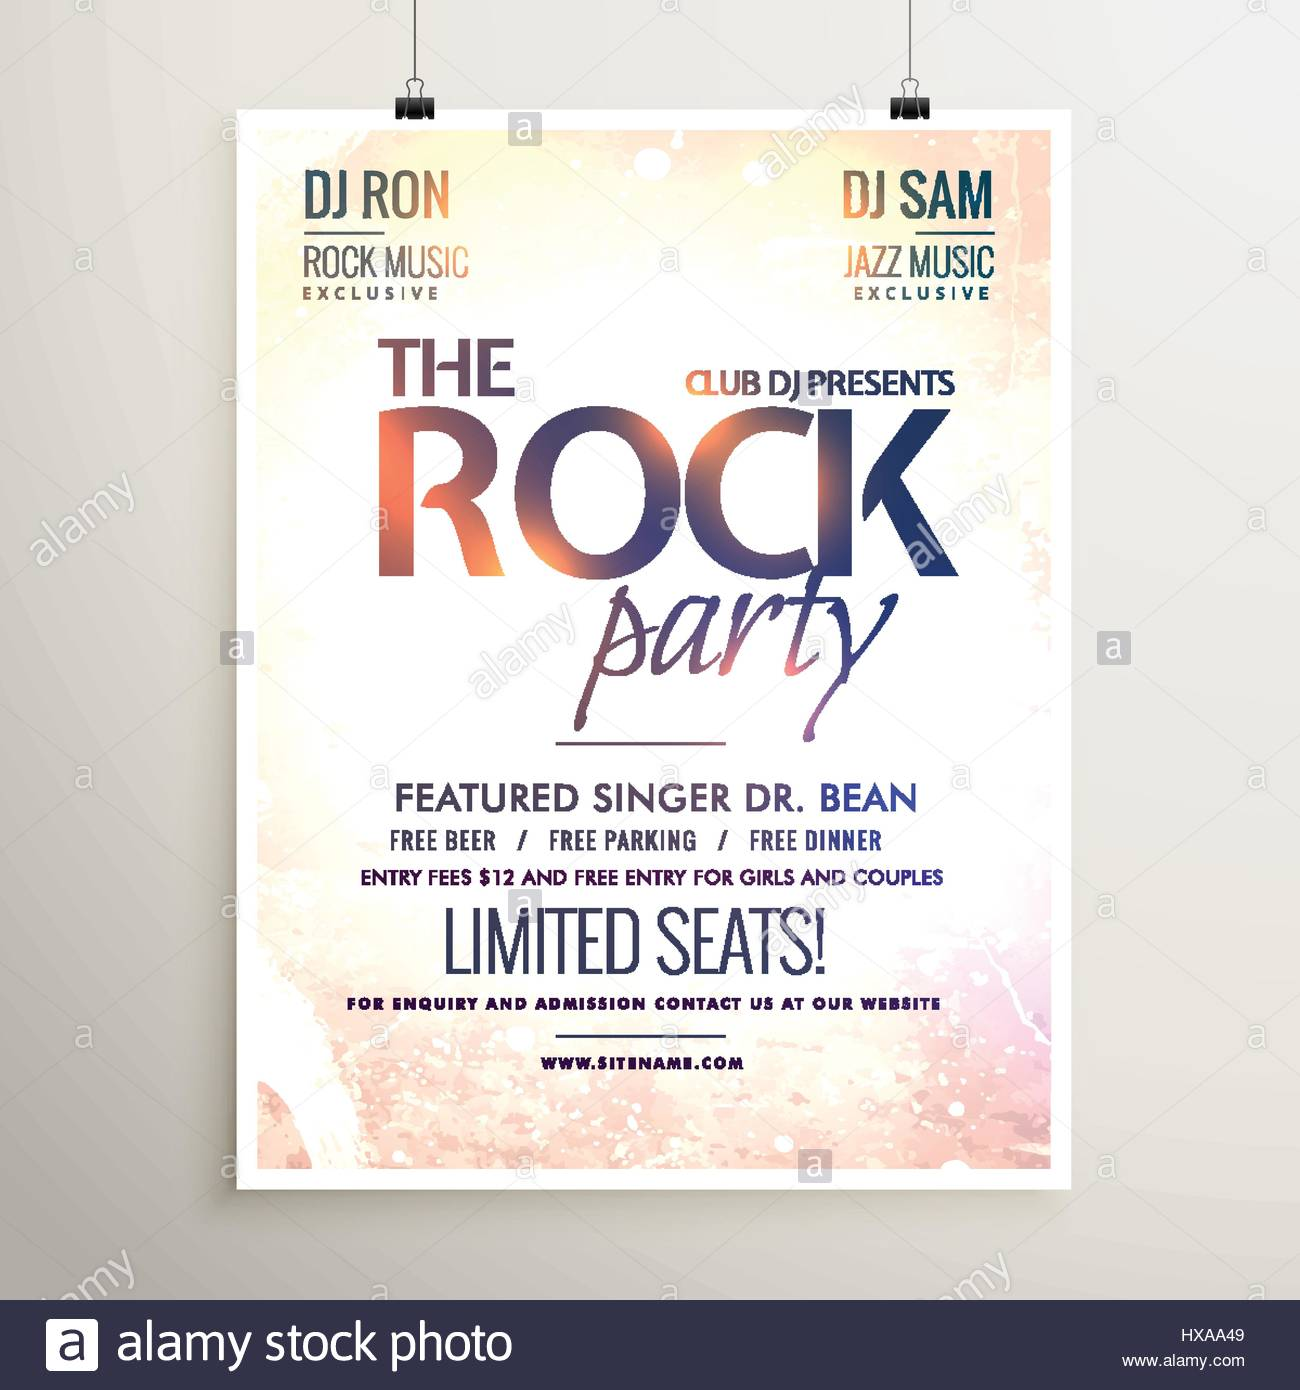 Disco Music Party Invitation Template Stockfotos & Disco Music Party ...